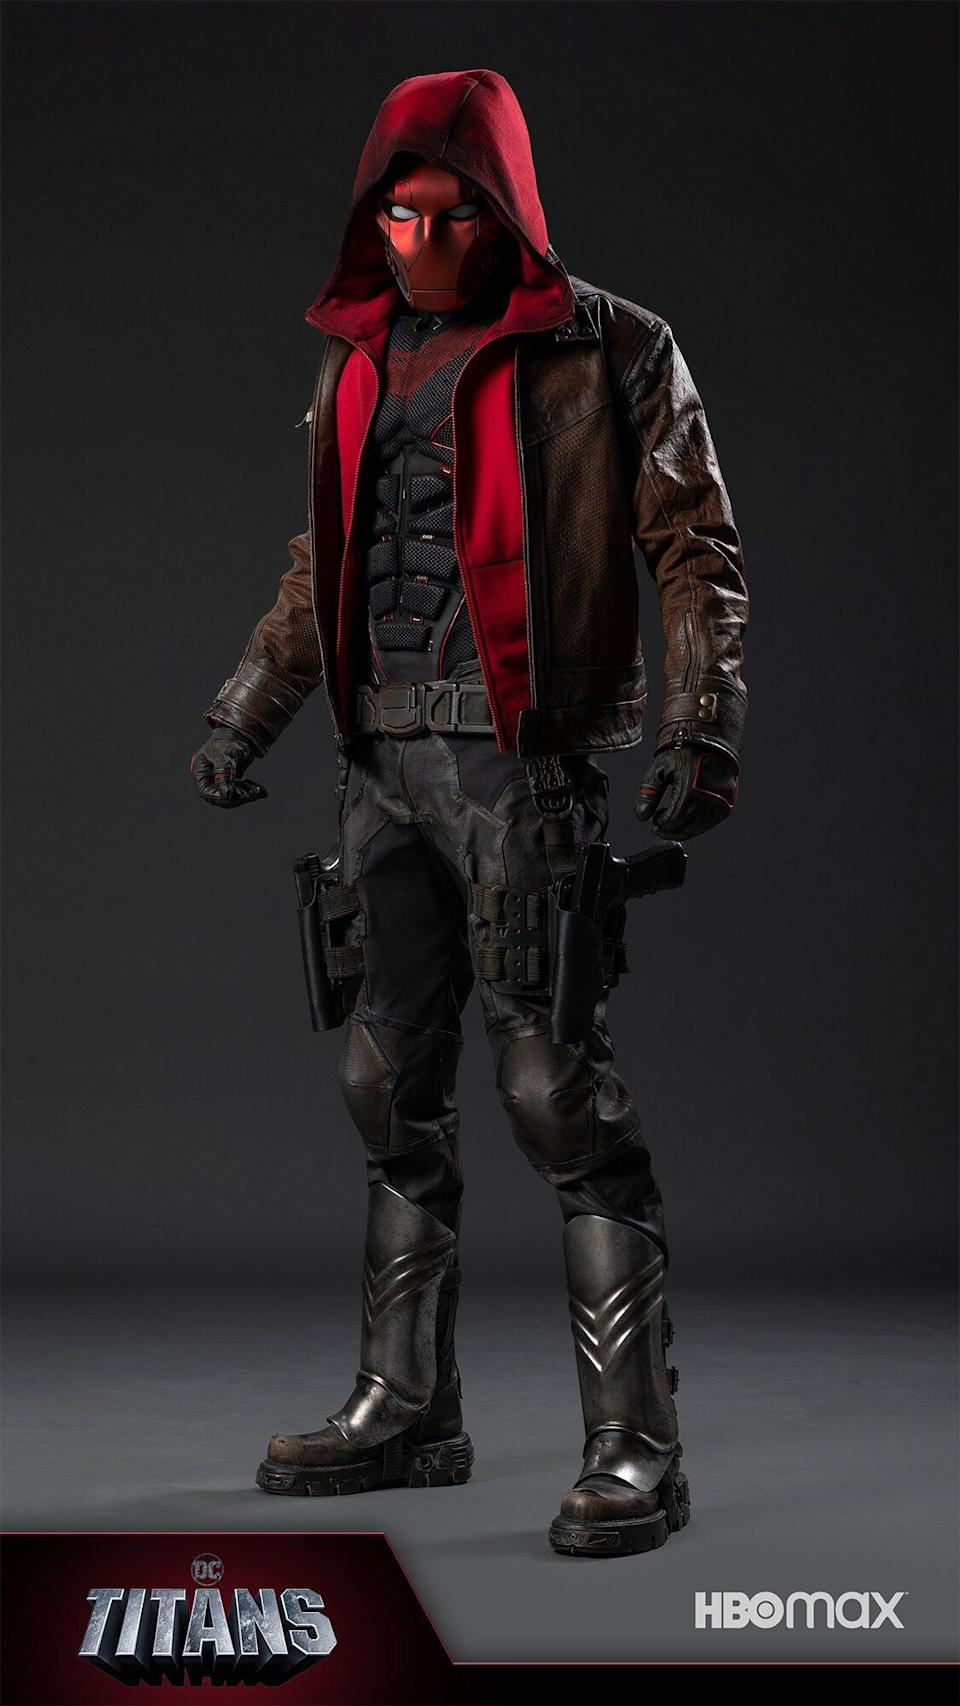 Titans reveals first look at Jason Todd's Red Hood suit in season 3